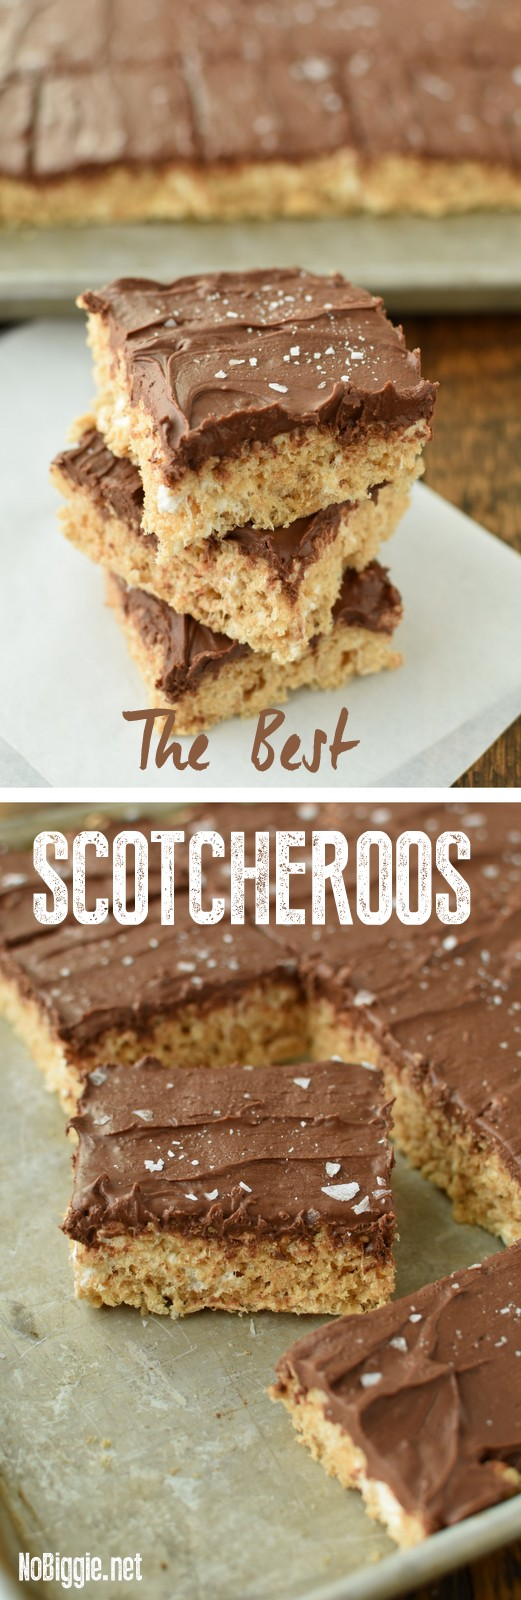 The BEST Scotcheroos made with marshmallows for a soft and chewy treat you can't put down! #scotcheroos #marshmellows #ricekrispies #ricekrispiesrecipes #chocolate #butterscotch